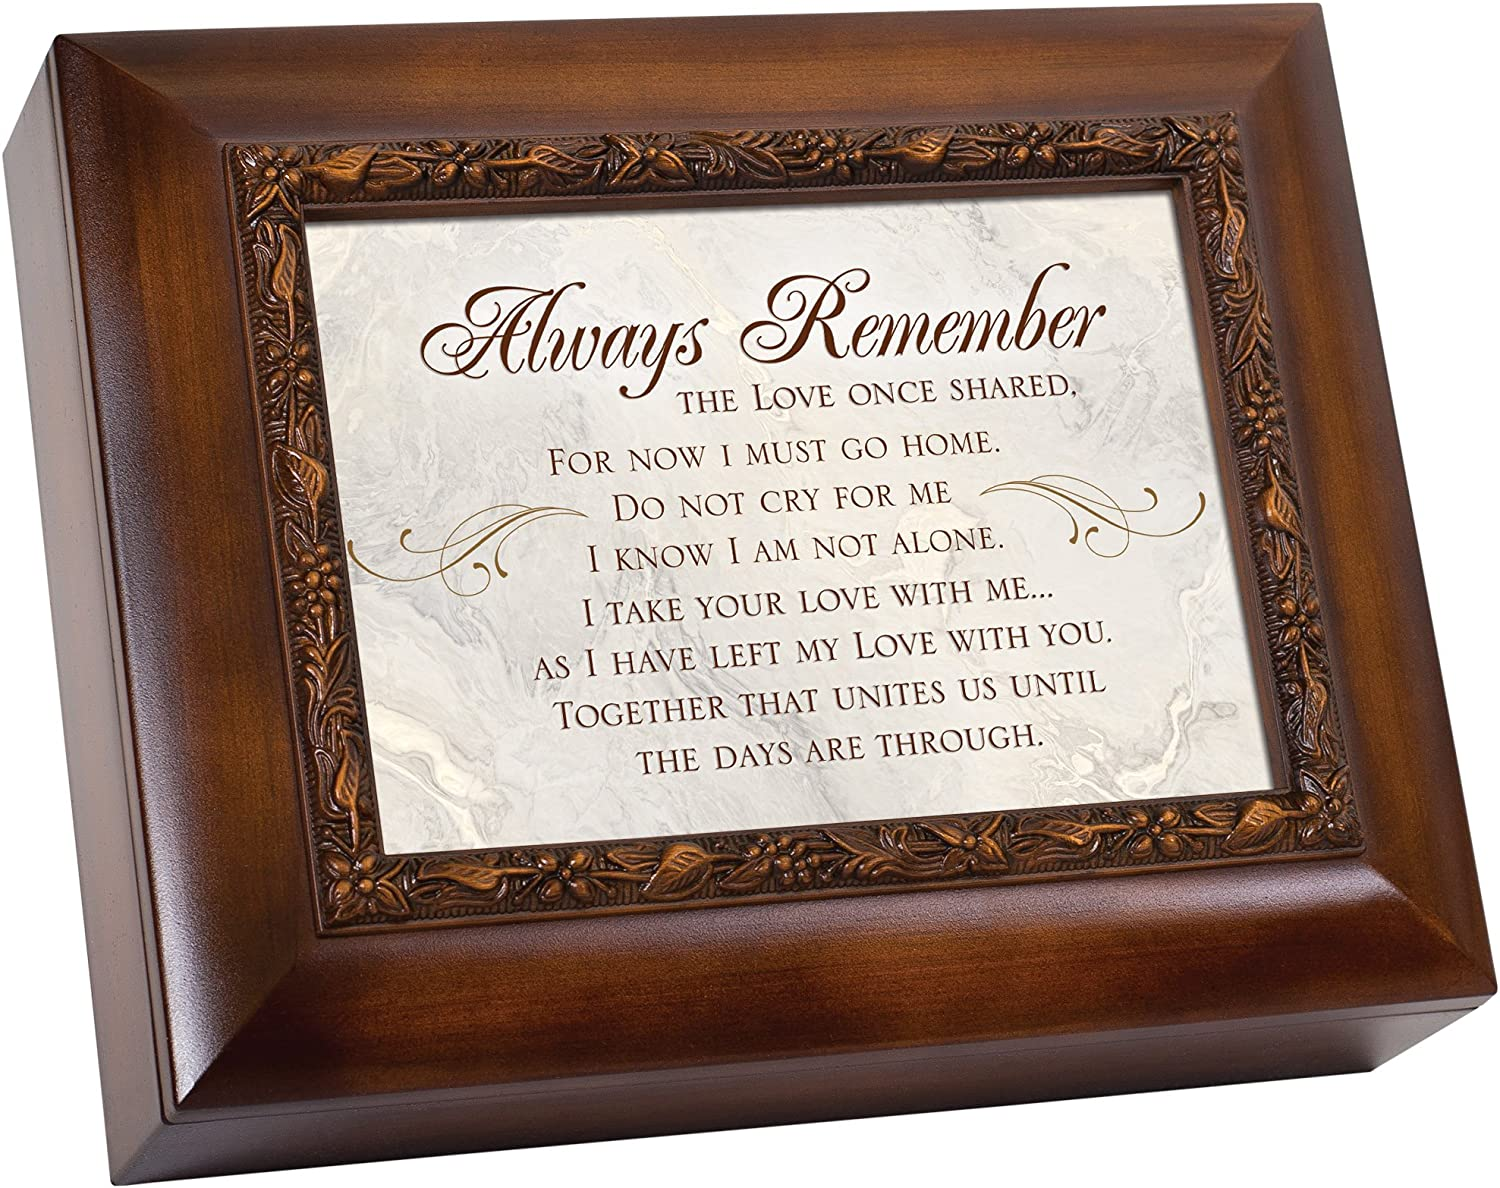 Cottage Garden Always Remember The Love Once Shared Woodgrain Embossed Ashes Bereavement Urn Box